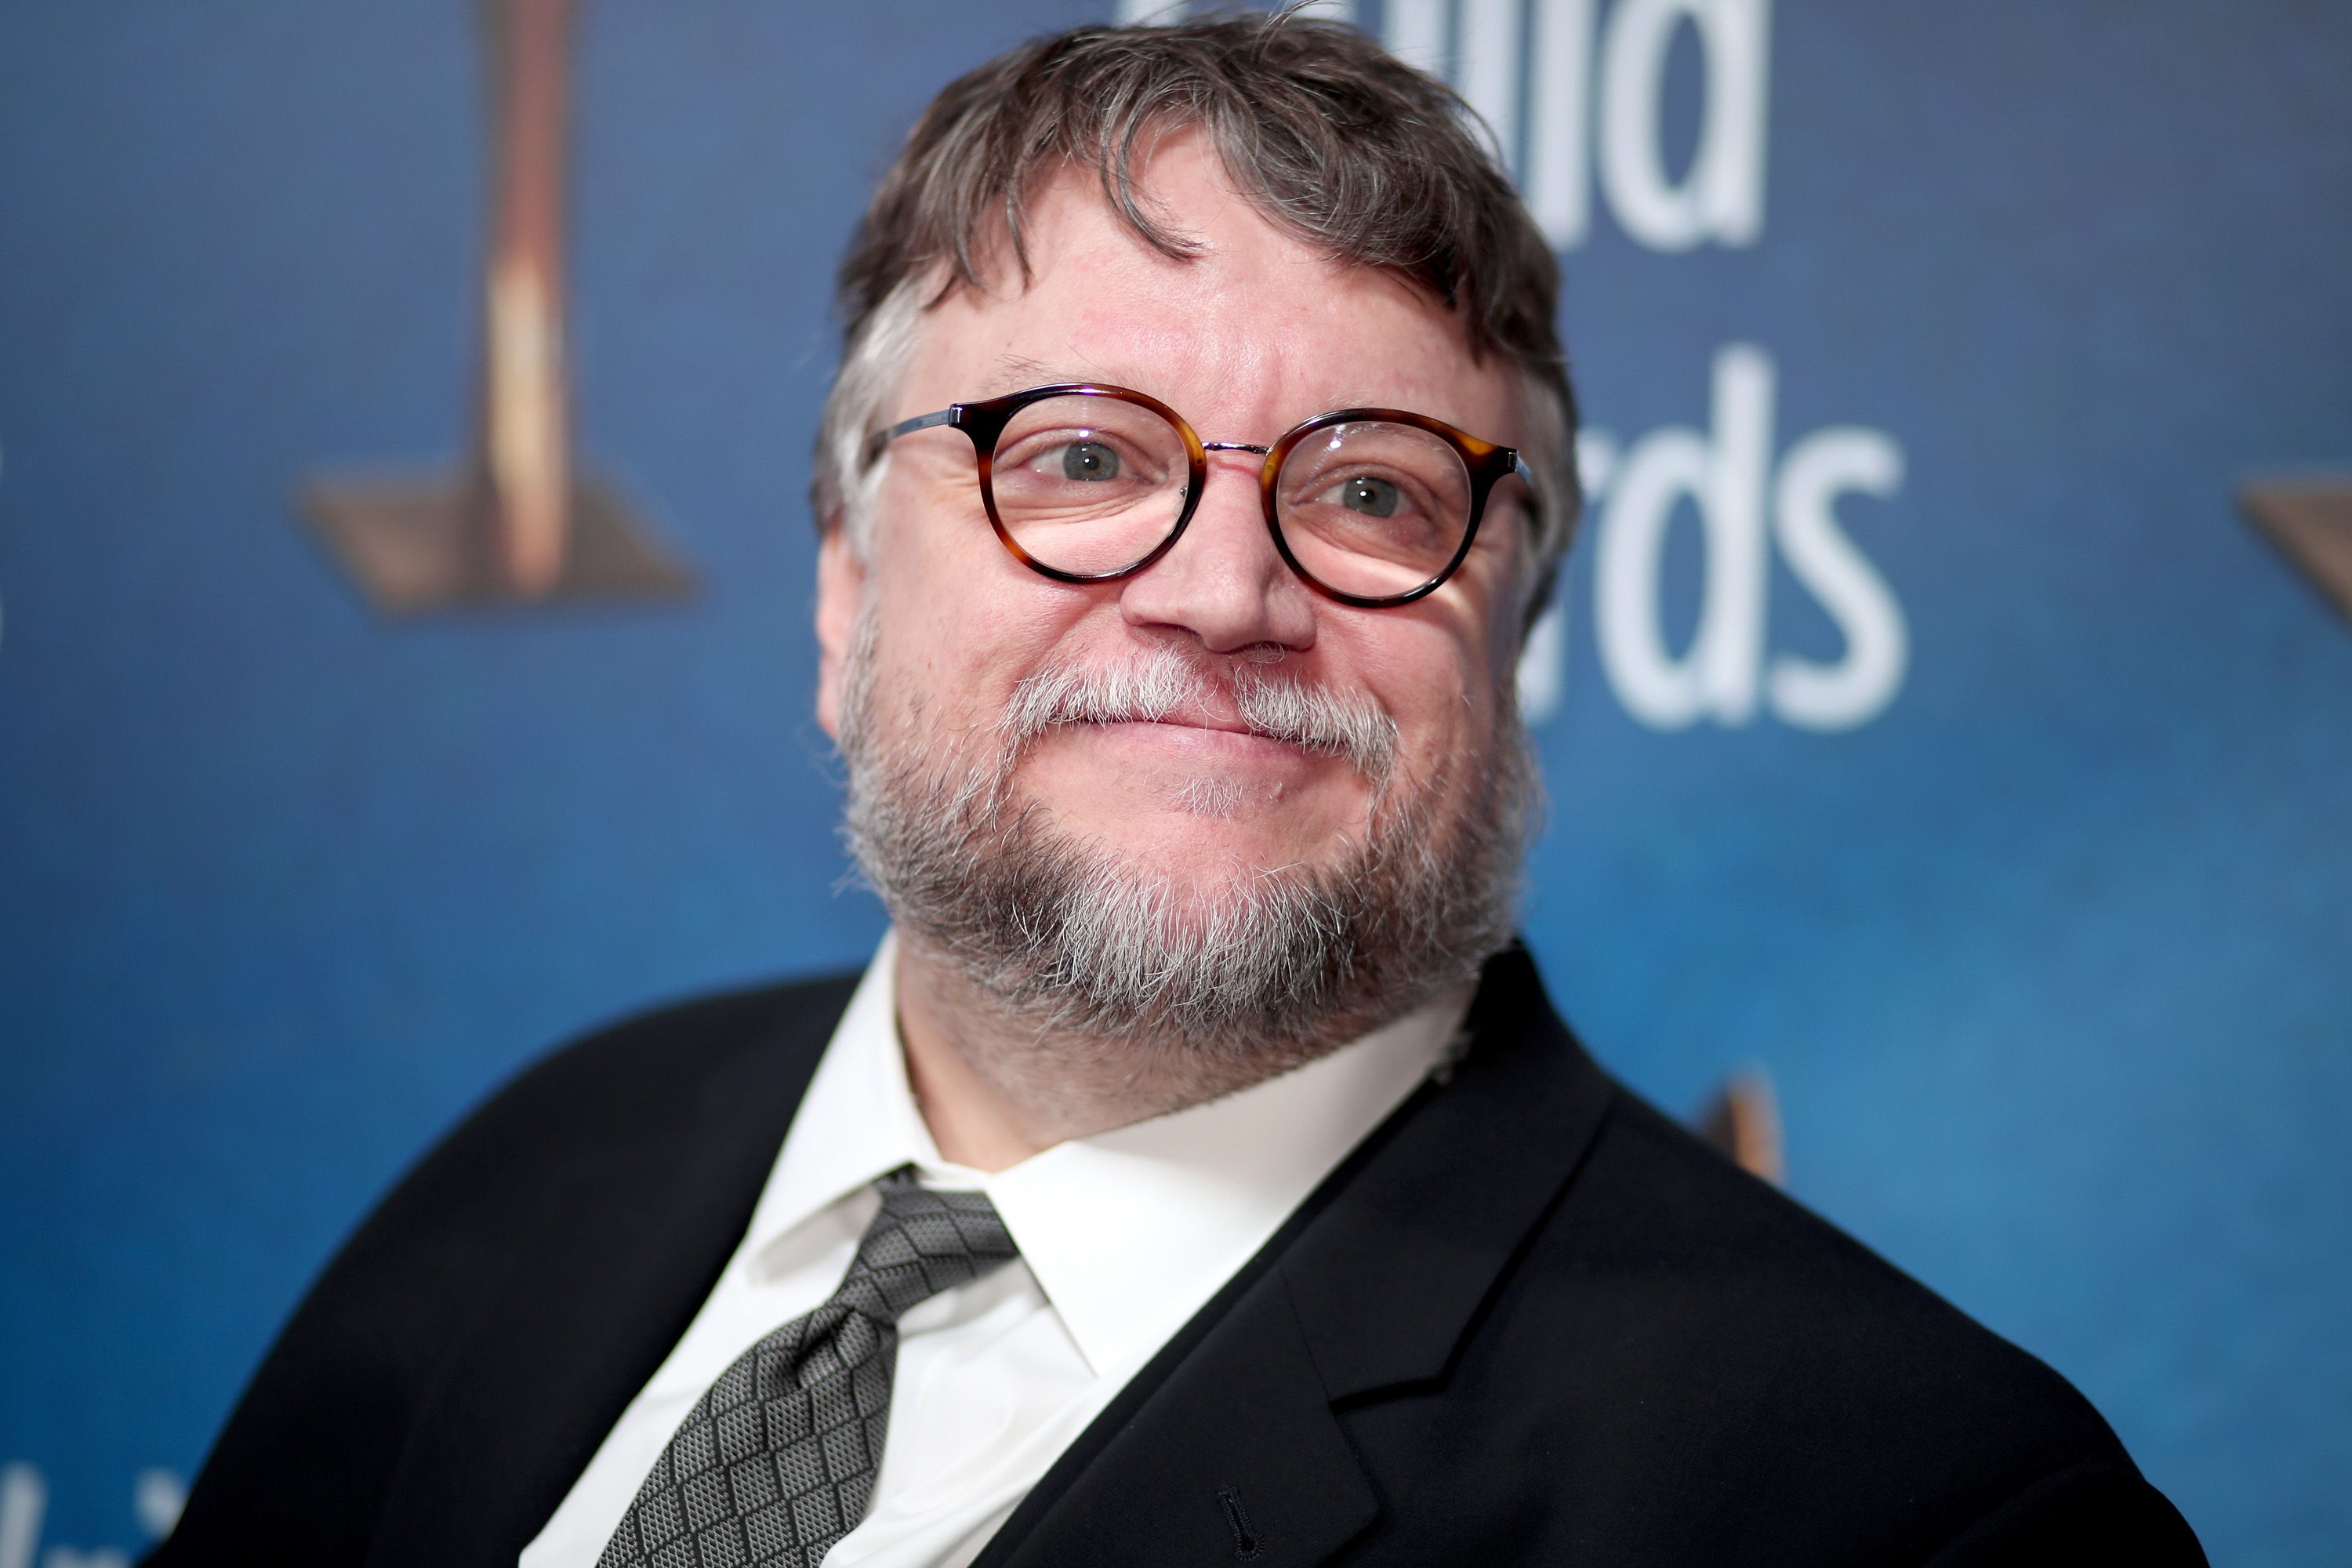 How to Get Your Own Limited Edition Guillermo del Toro Action Figure